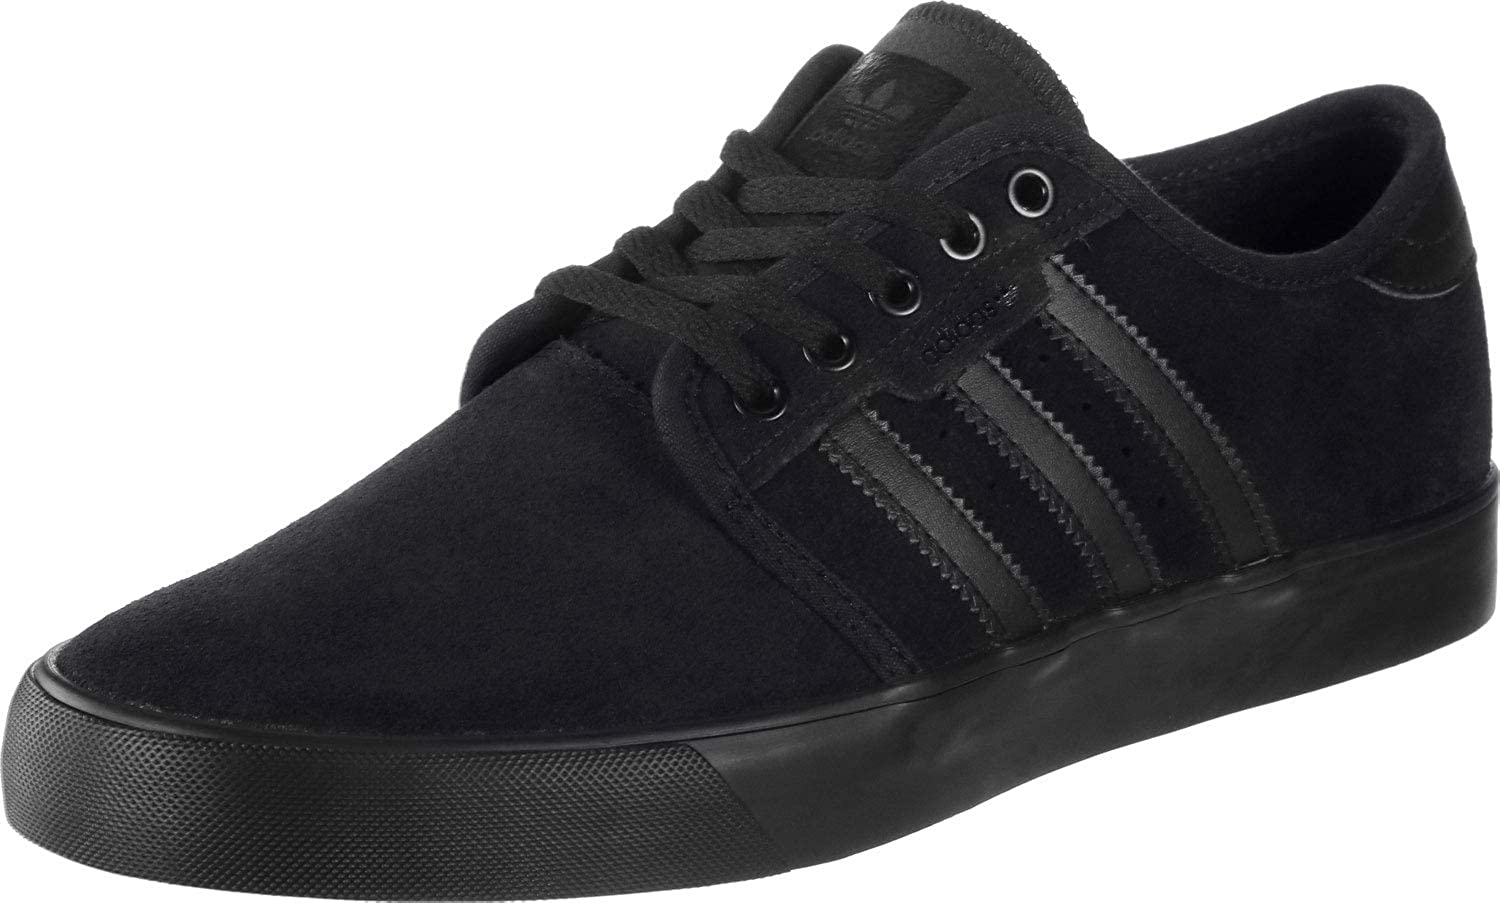 Adidas Boys' Seeley Fitness shoes